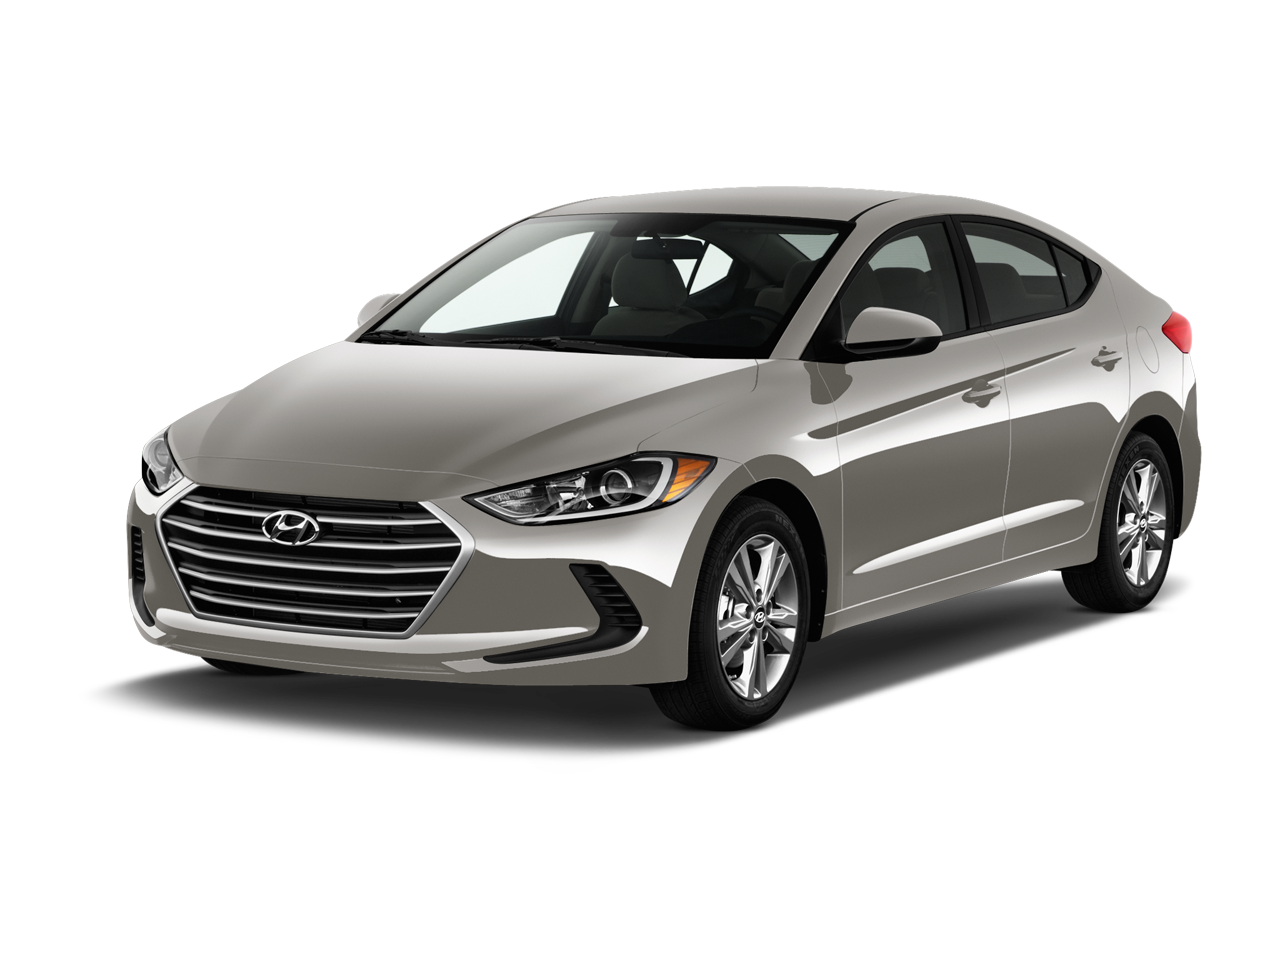 new 2017 hyundai elantra value edition near framingham ma herb connolly auto group. Black Bedroom Furniture Sets. Home Design Ideas